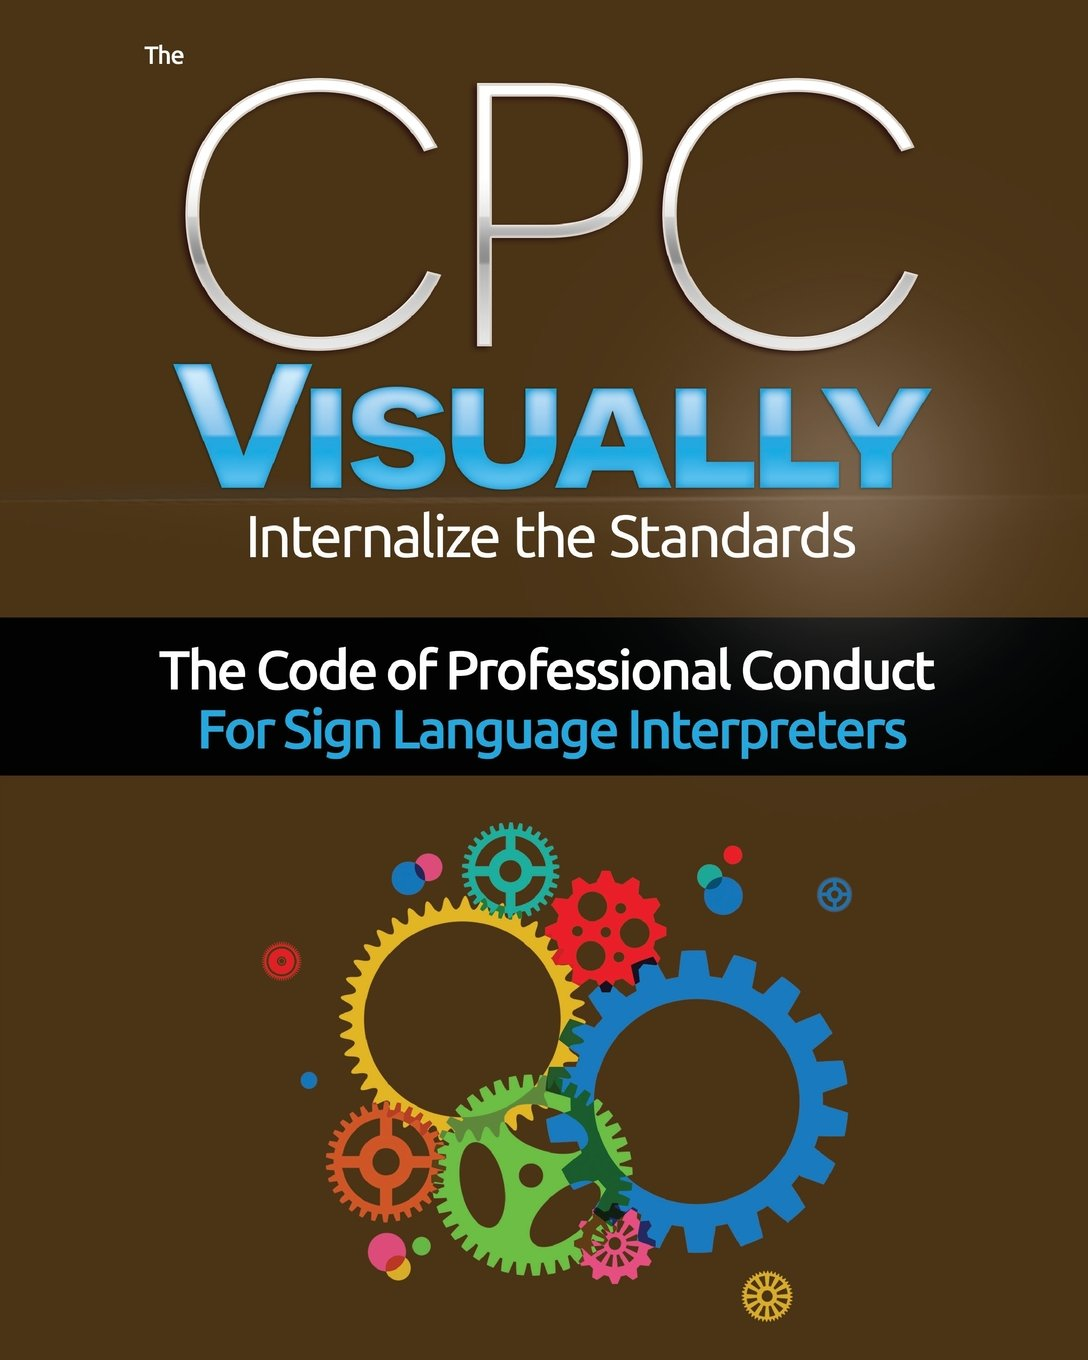 Download The Cpc Visually: Internalize the Standards PDF